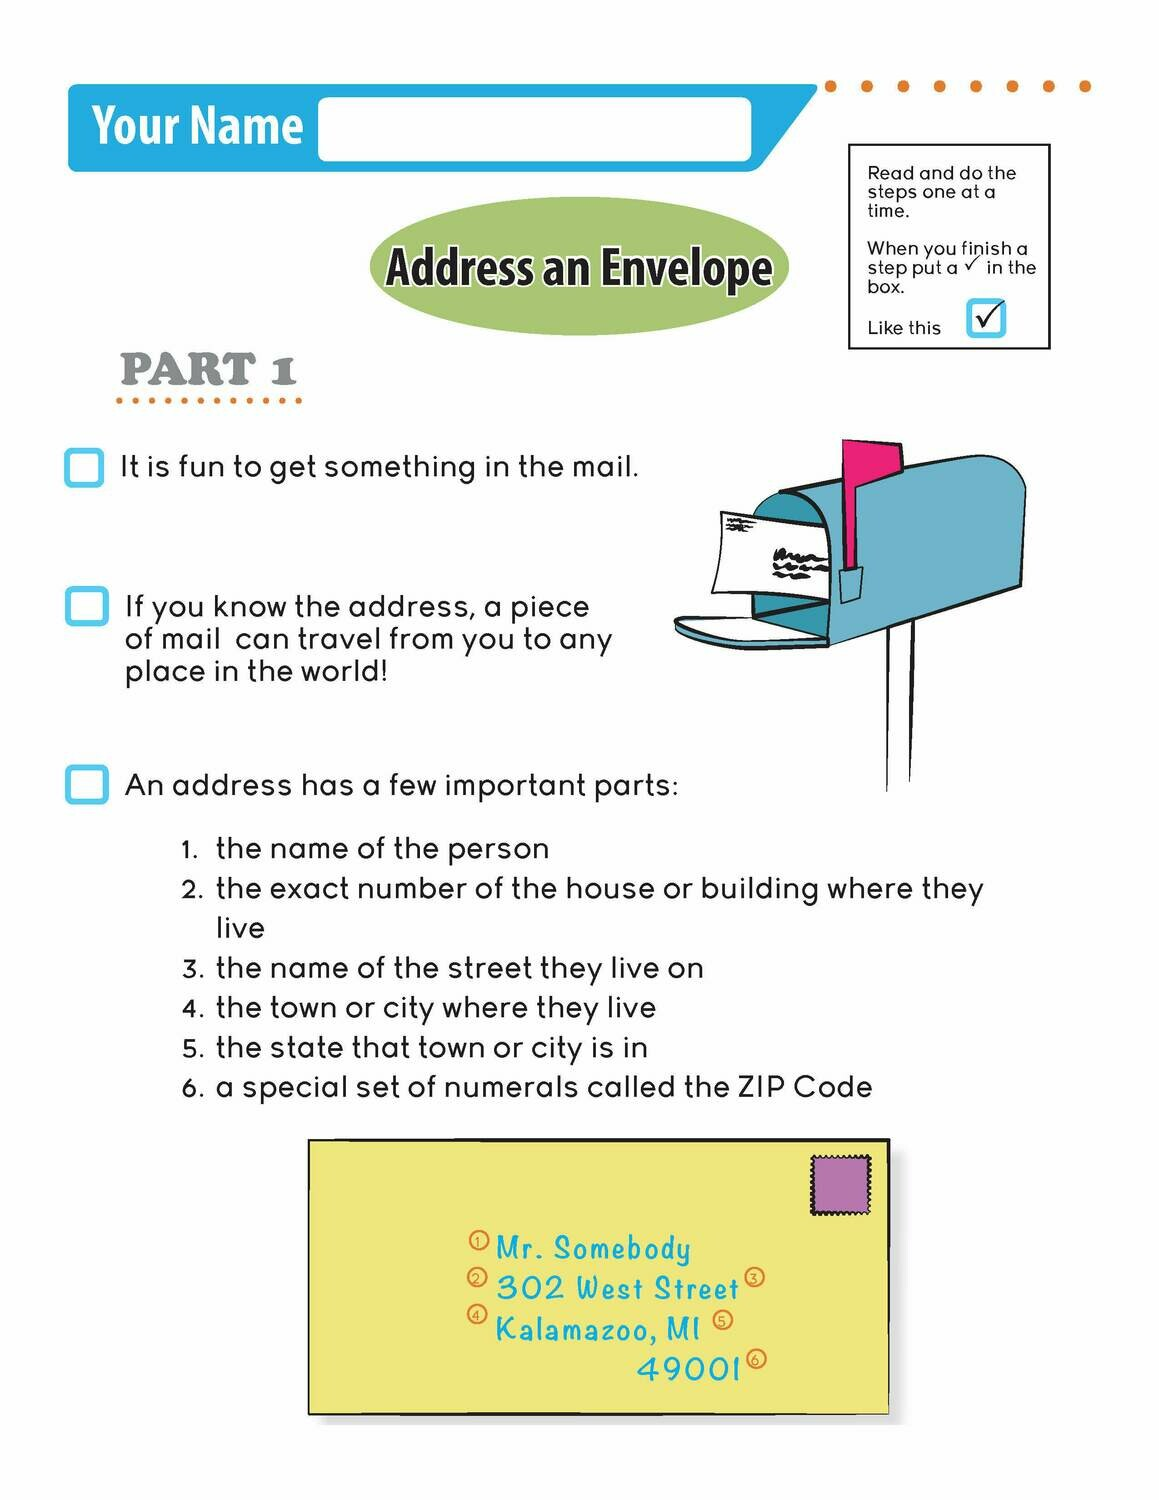 Independent Learning Activity - Address an Envelope